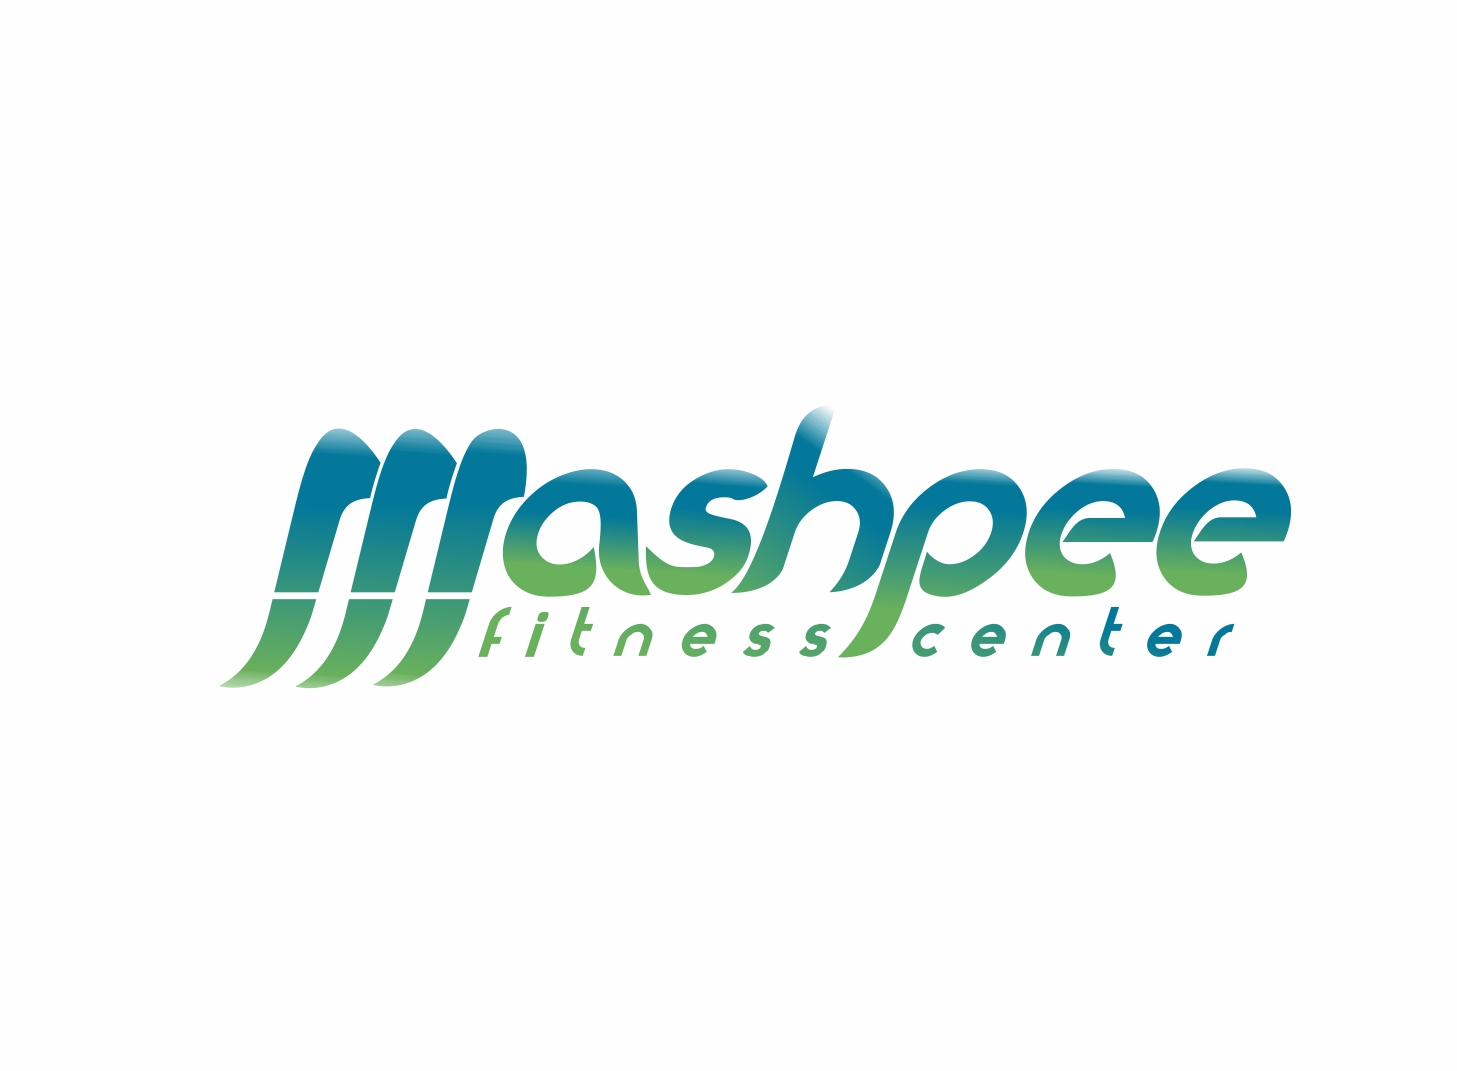 Logo Design by Zdravko Krulj - Entry No. 26 in the Logo Design Contest New Logo Design for Mashpee Fitness Center.